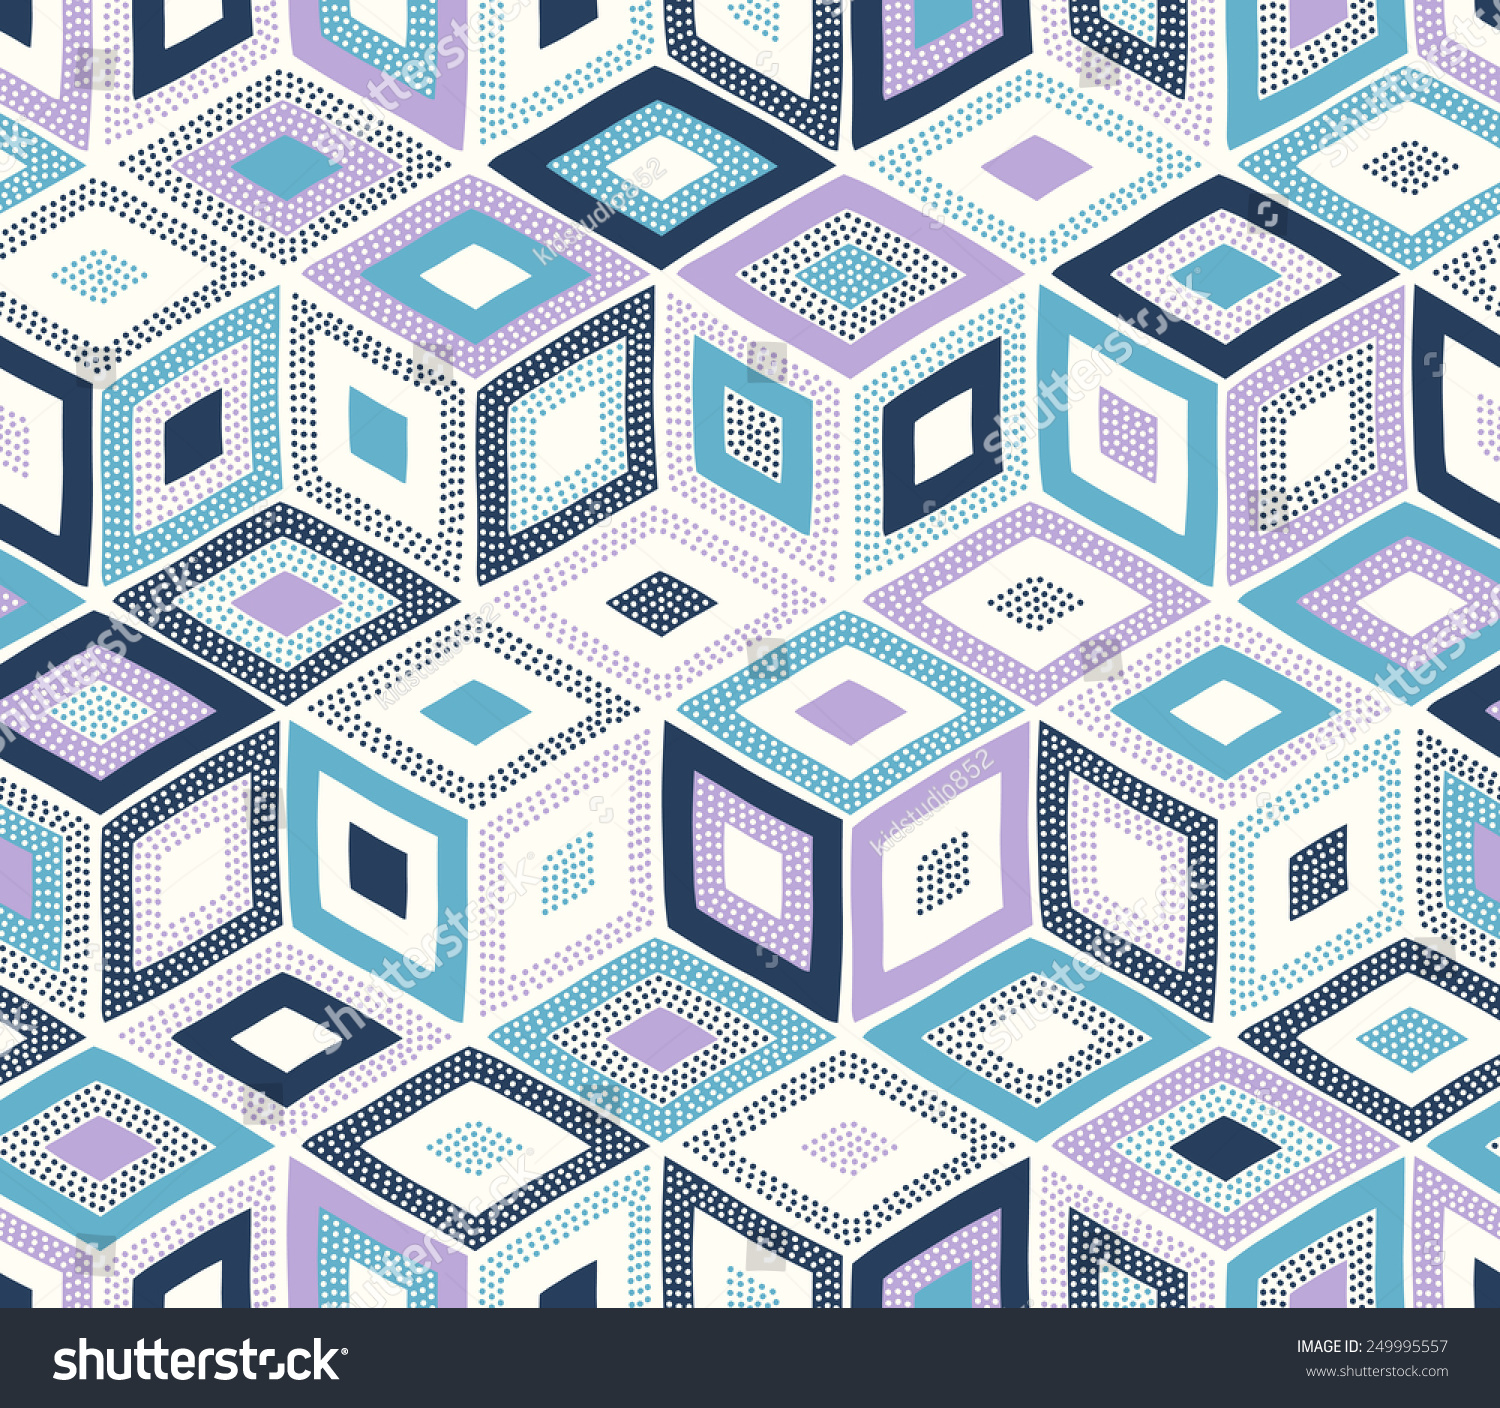 Seamless Doodle Dots Geometric Square Pattern Stock Vector